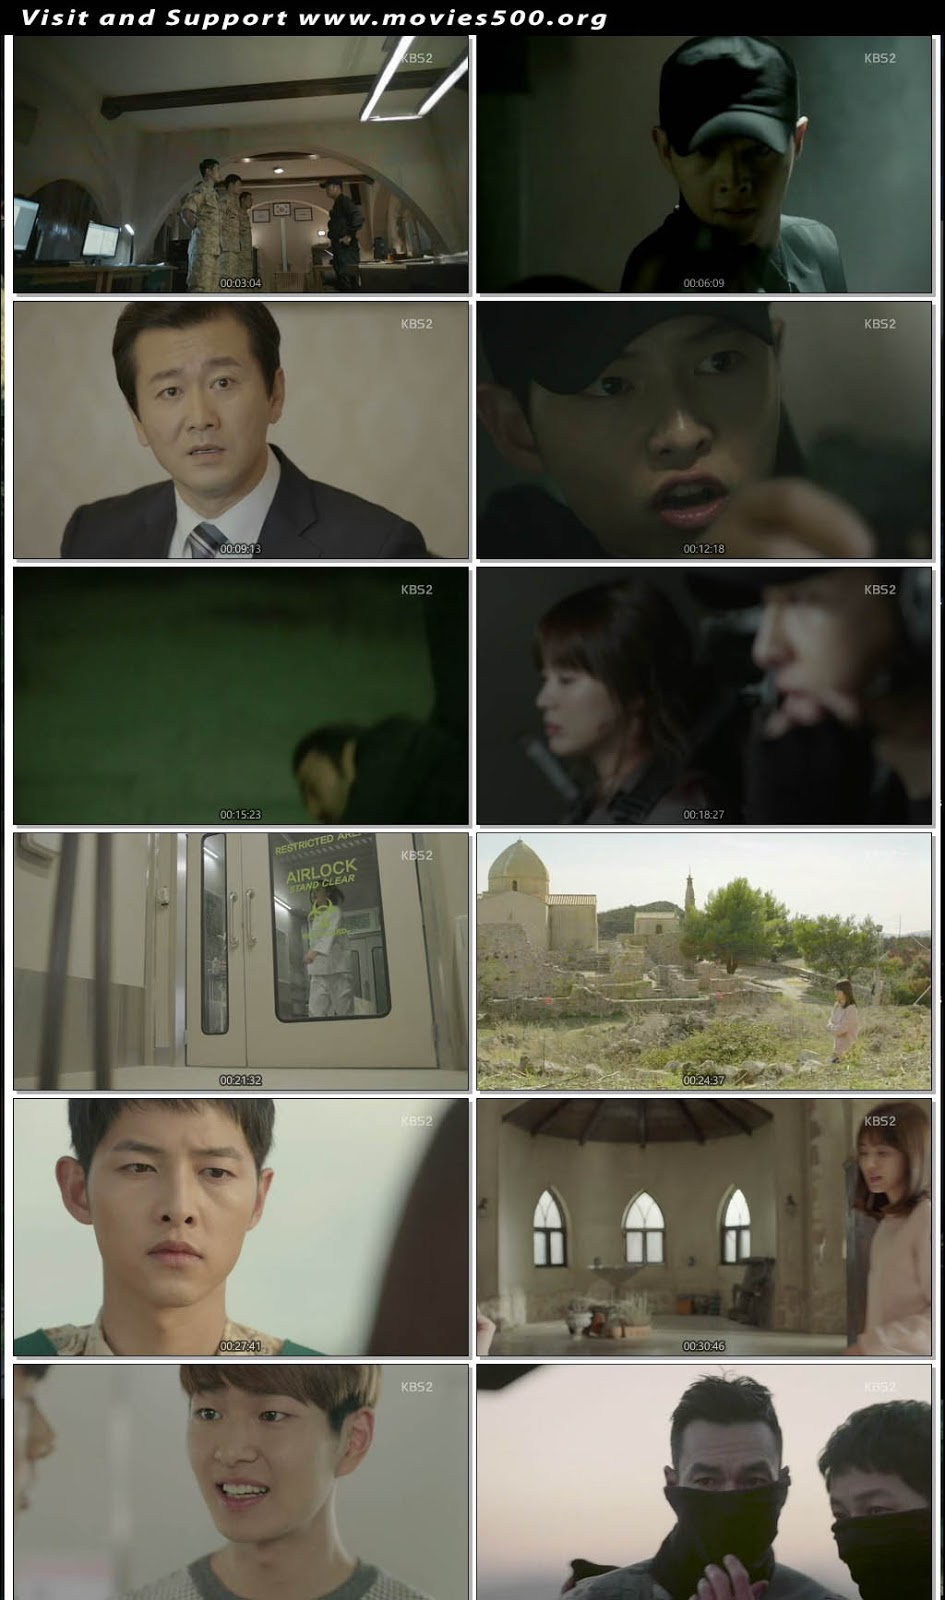 Descendants of the Sun 2016 S01E12 In Hindi Download at movies500.me